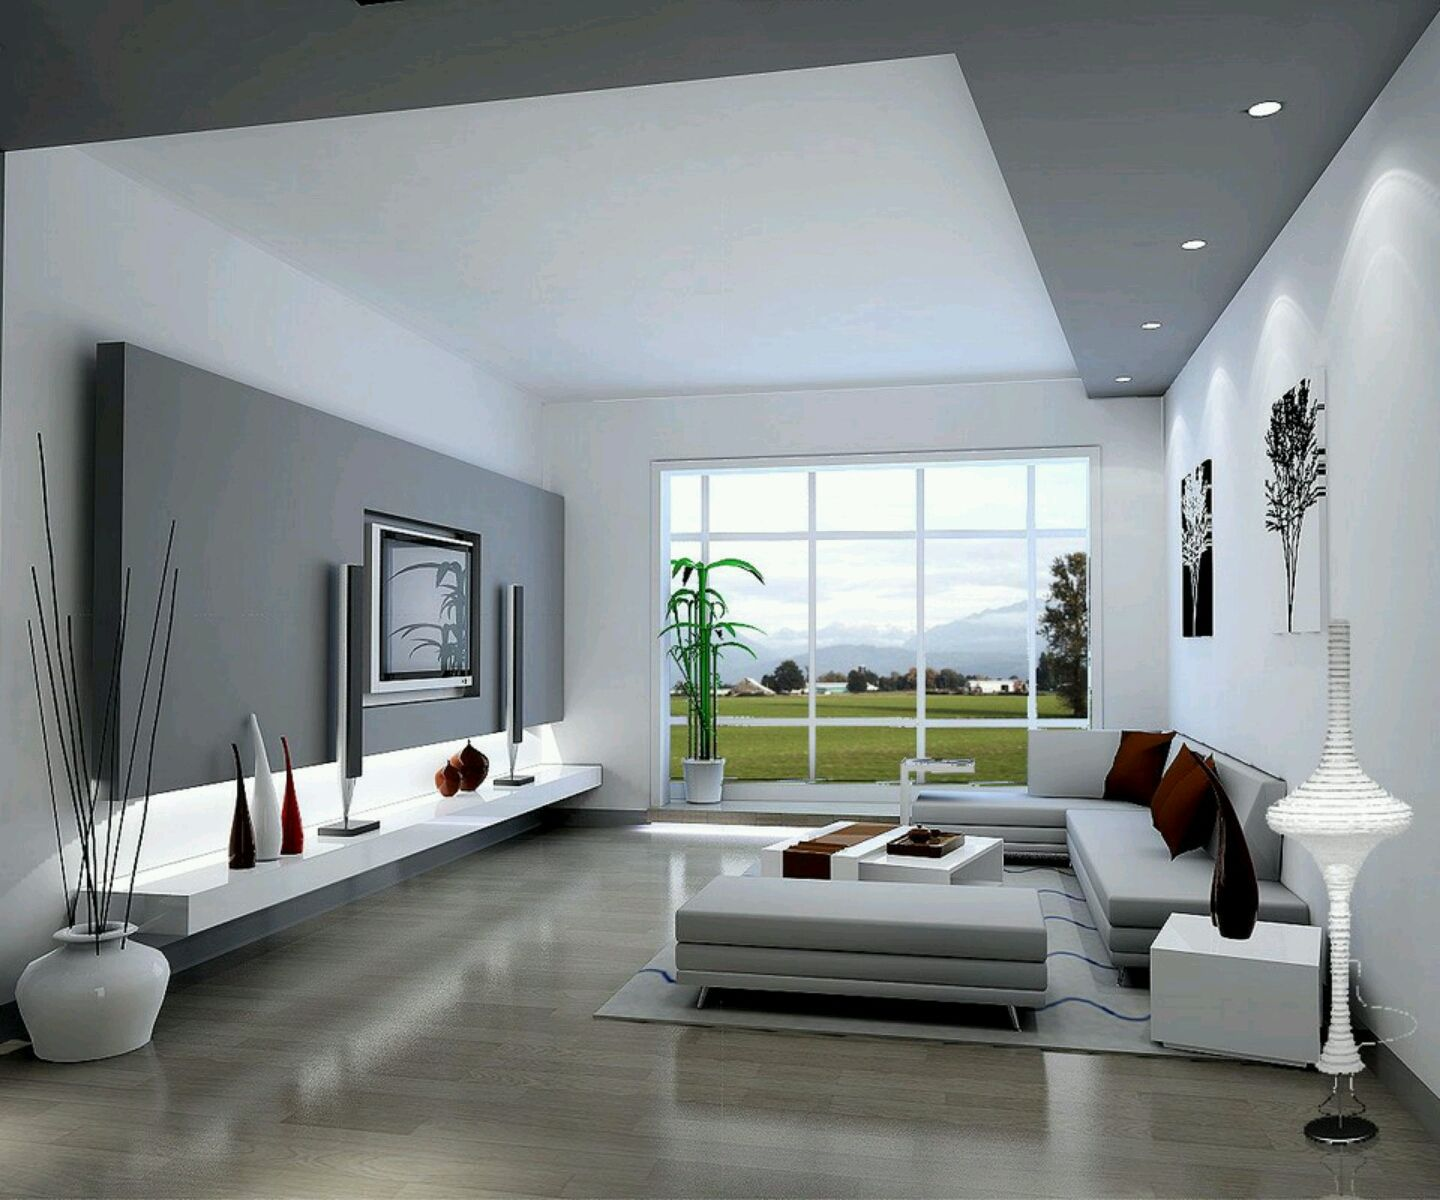 Decoration living room modern - 25 Best Modern Living Room Designs